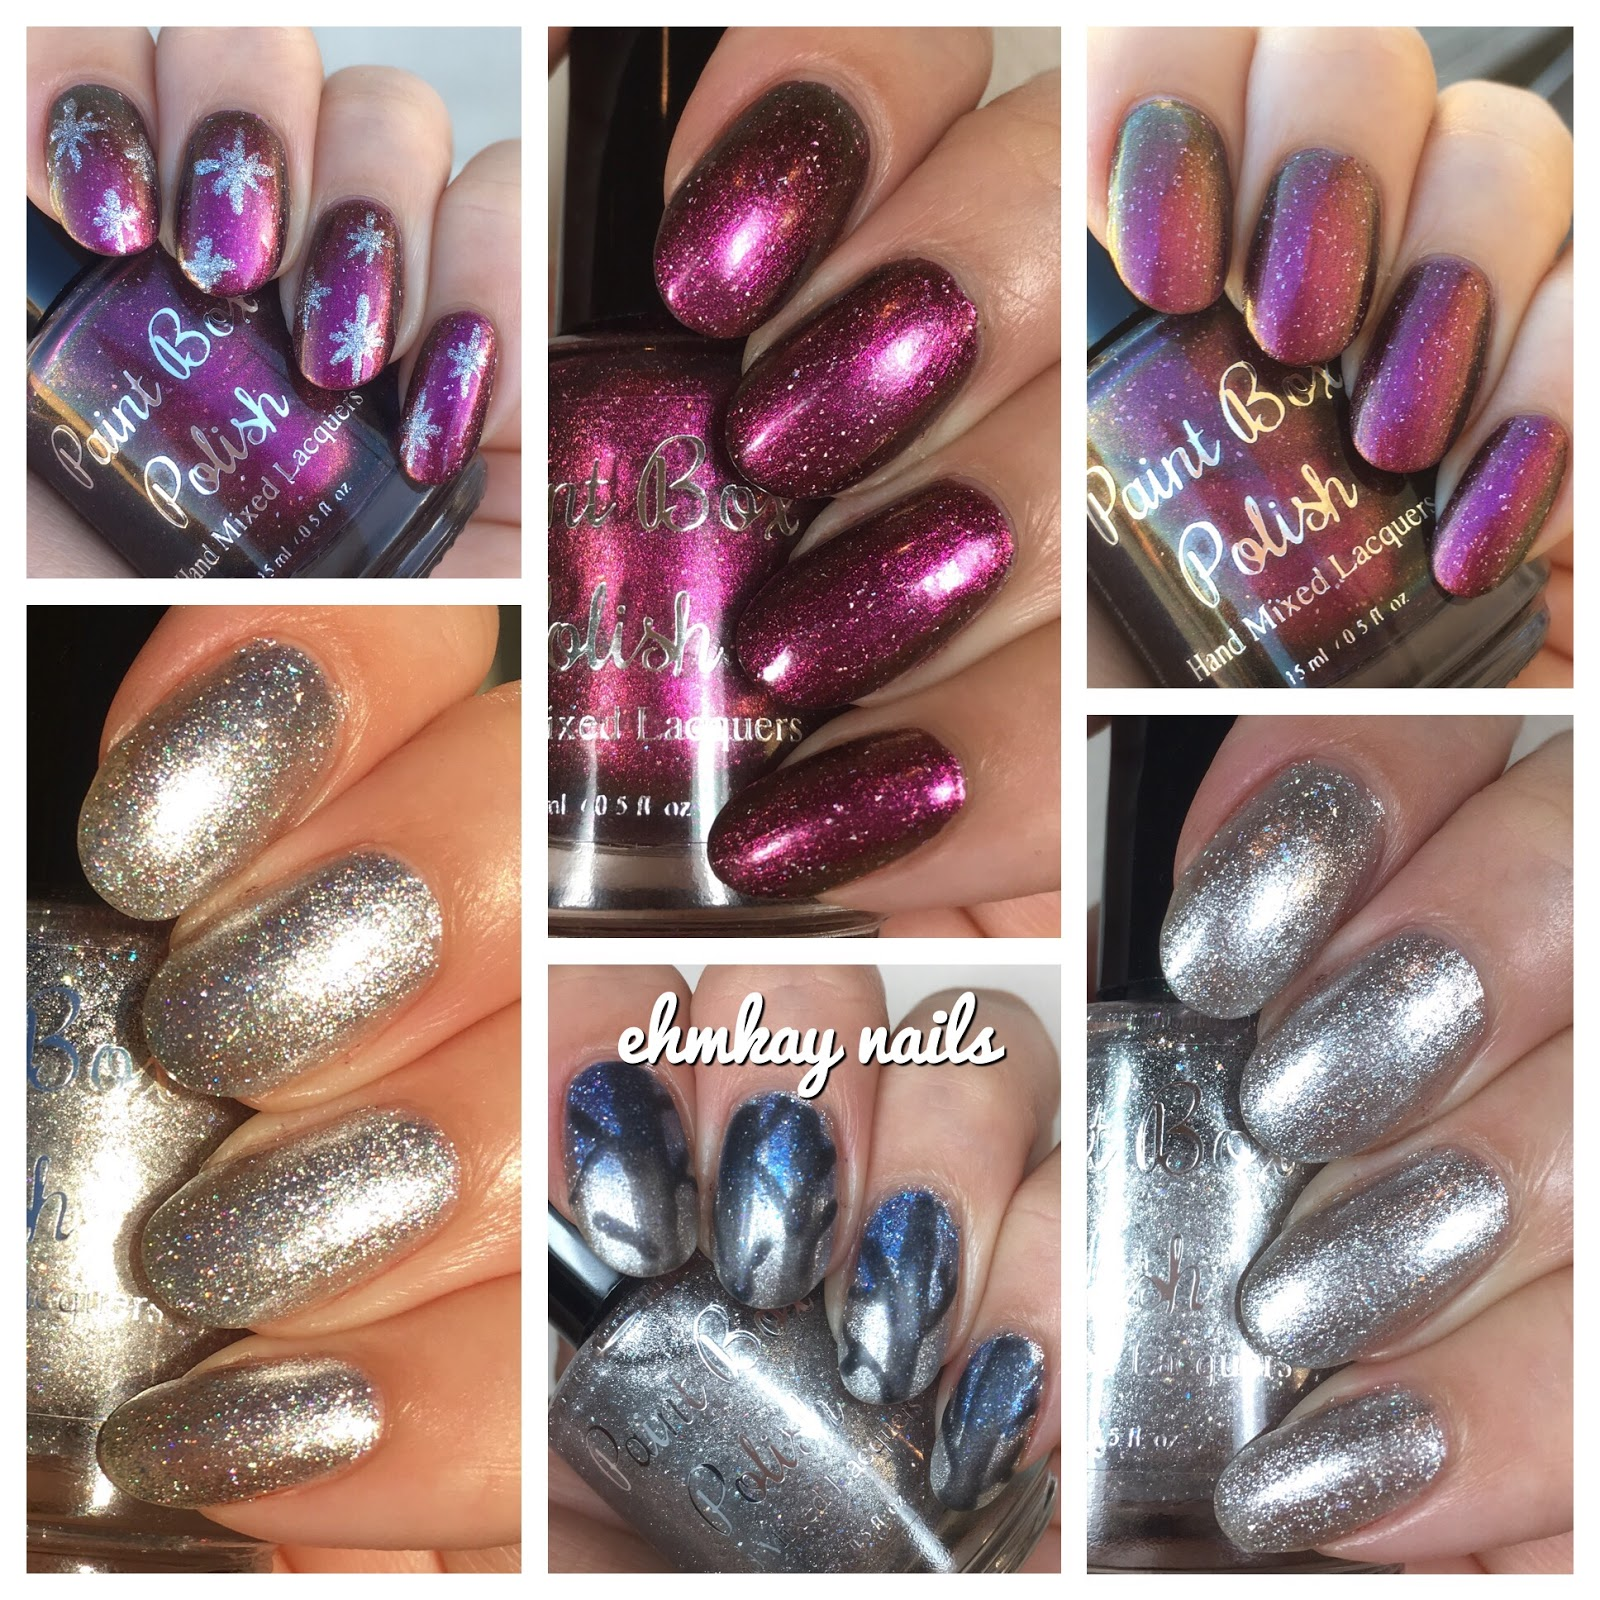 ehmkay nails: Paint Box Polish Snowy Evening and Sanguine Stars ...